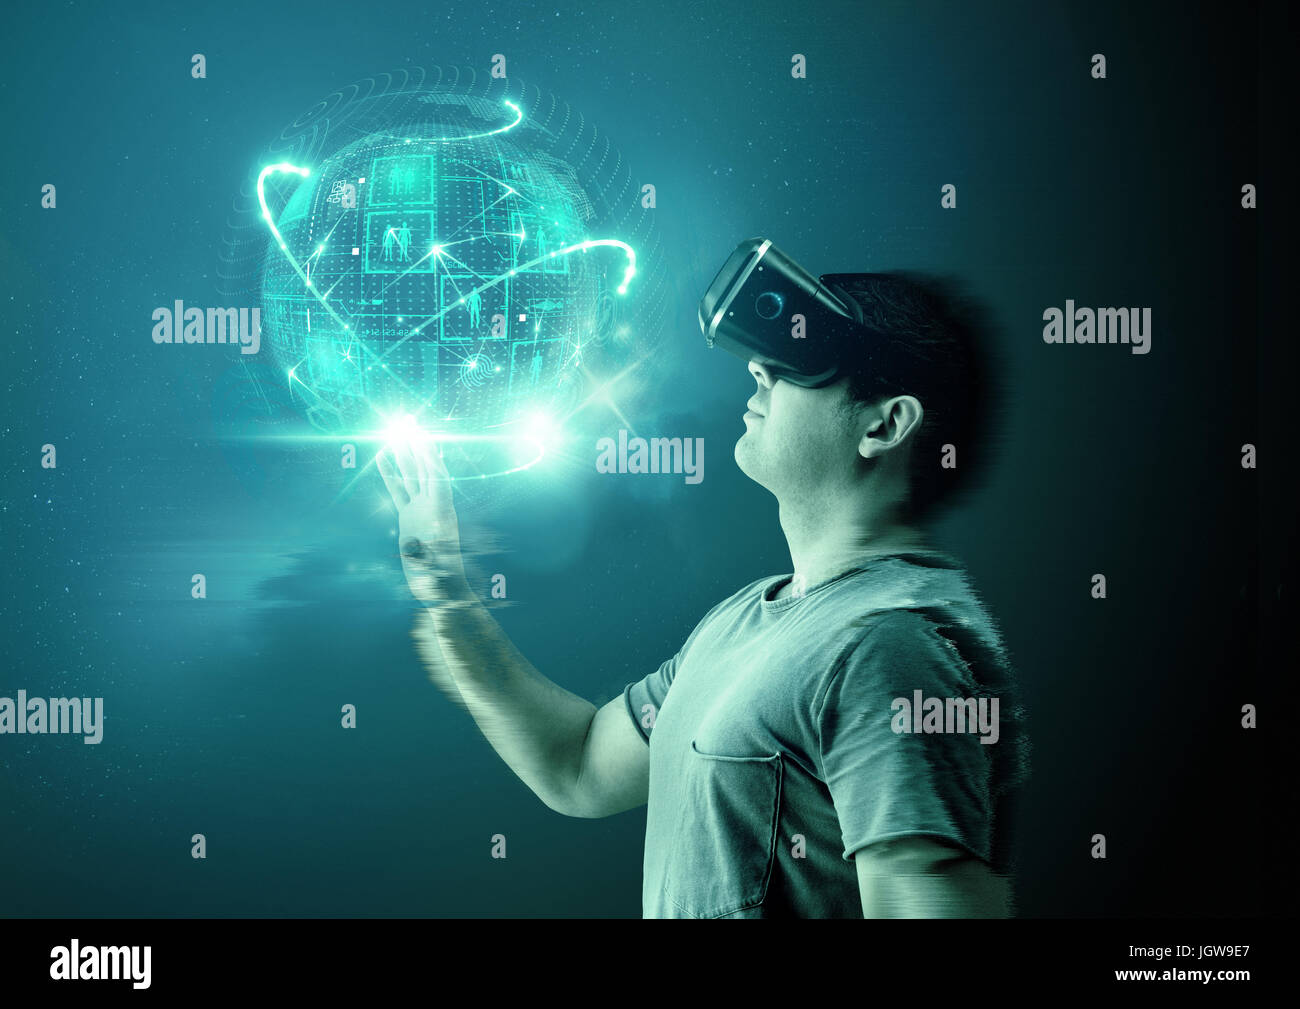 A young man wearing virtual reality (VR) goggles and headset with a projection of a digital world. - Stock Image